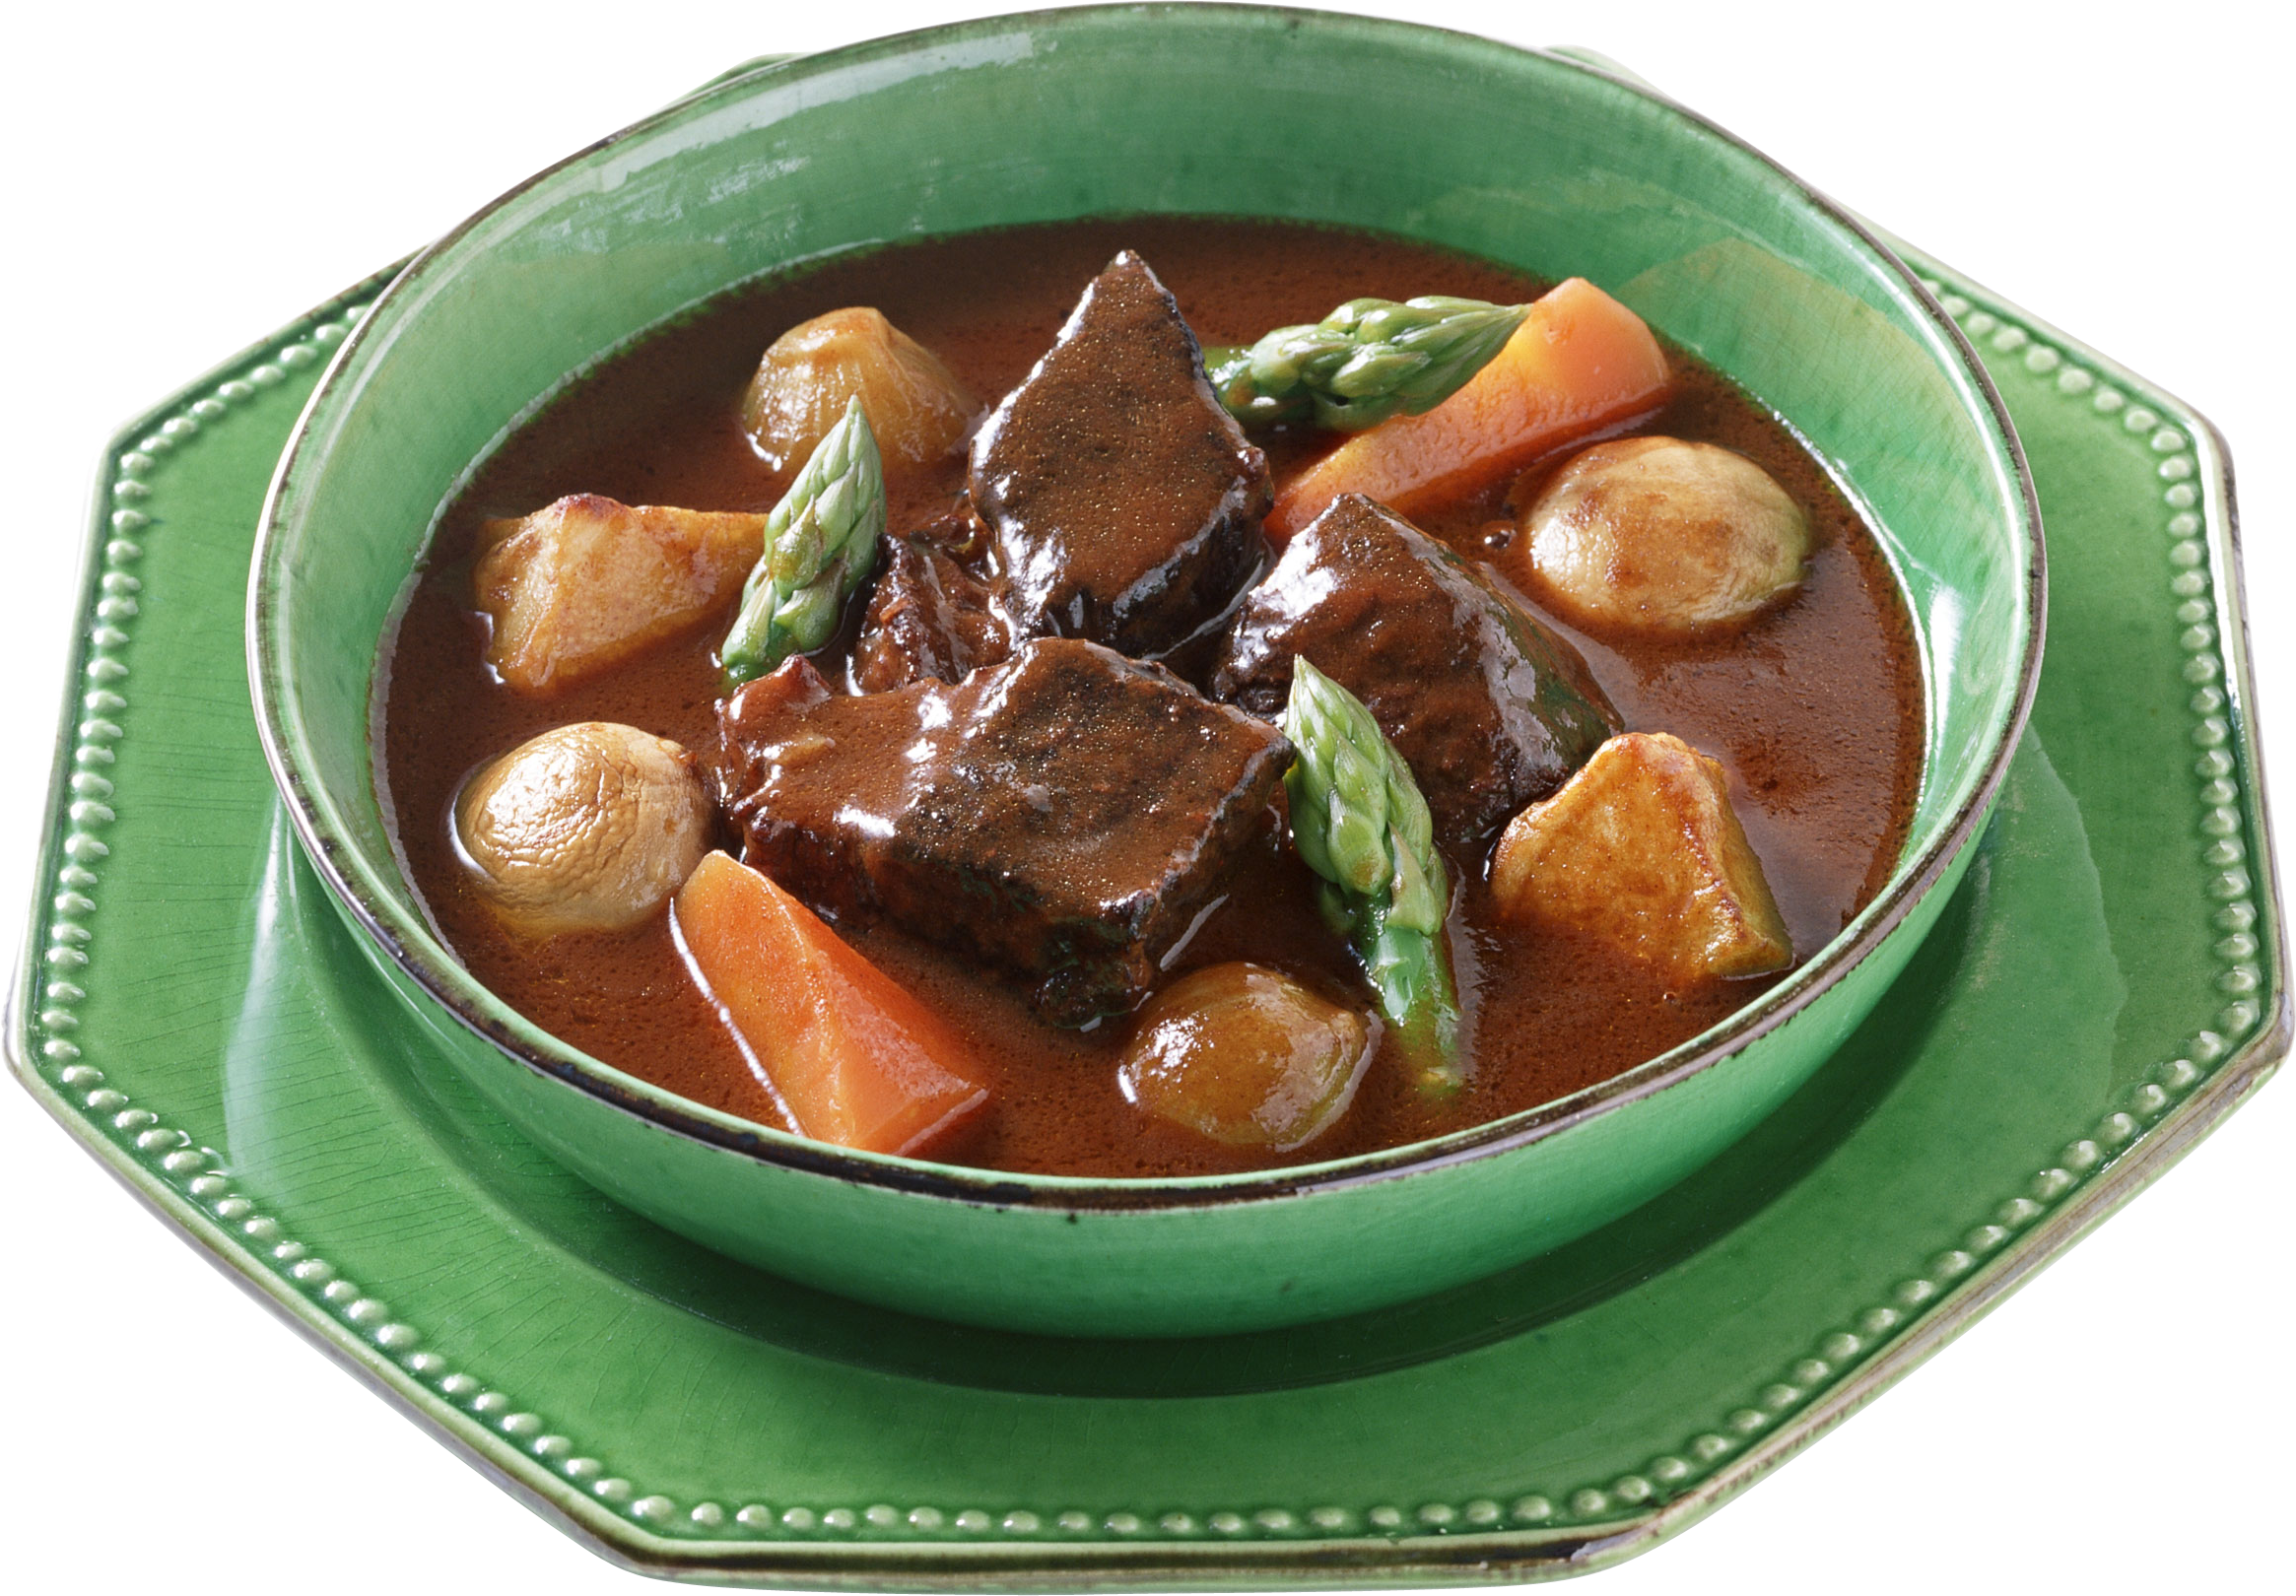 Soup with flesh carrots and potatoes PNG Image